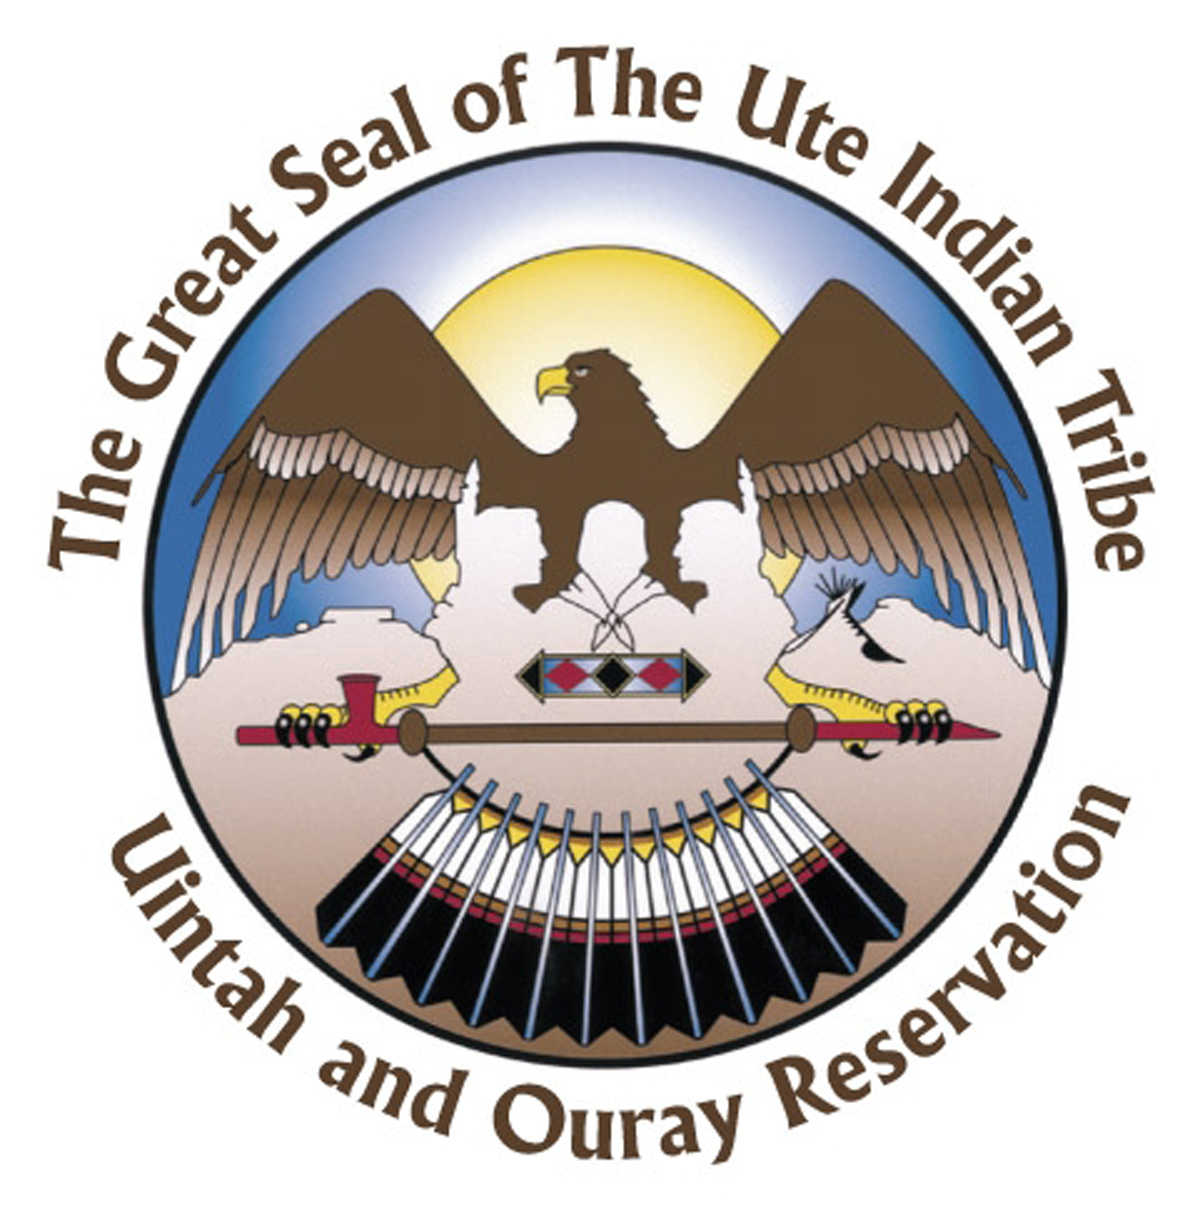 The Great Seal of The Ute Indian Tribe.